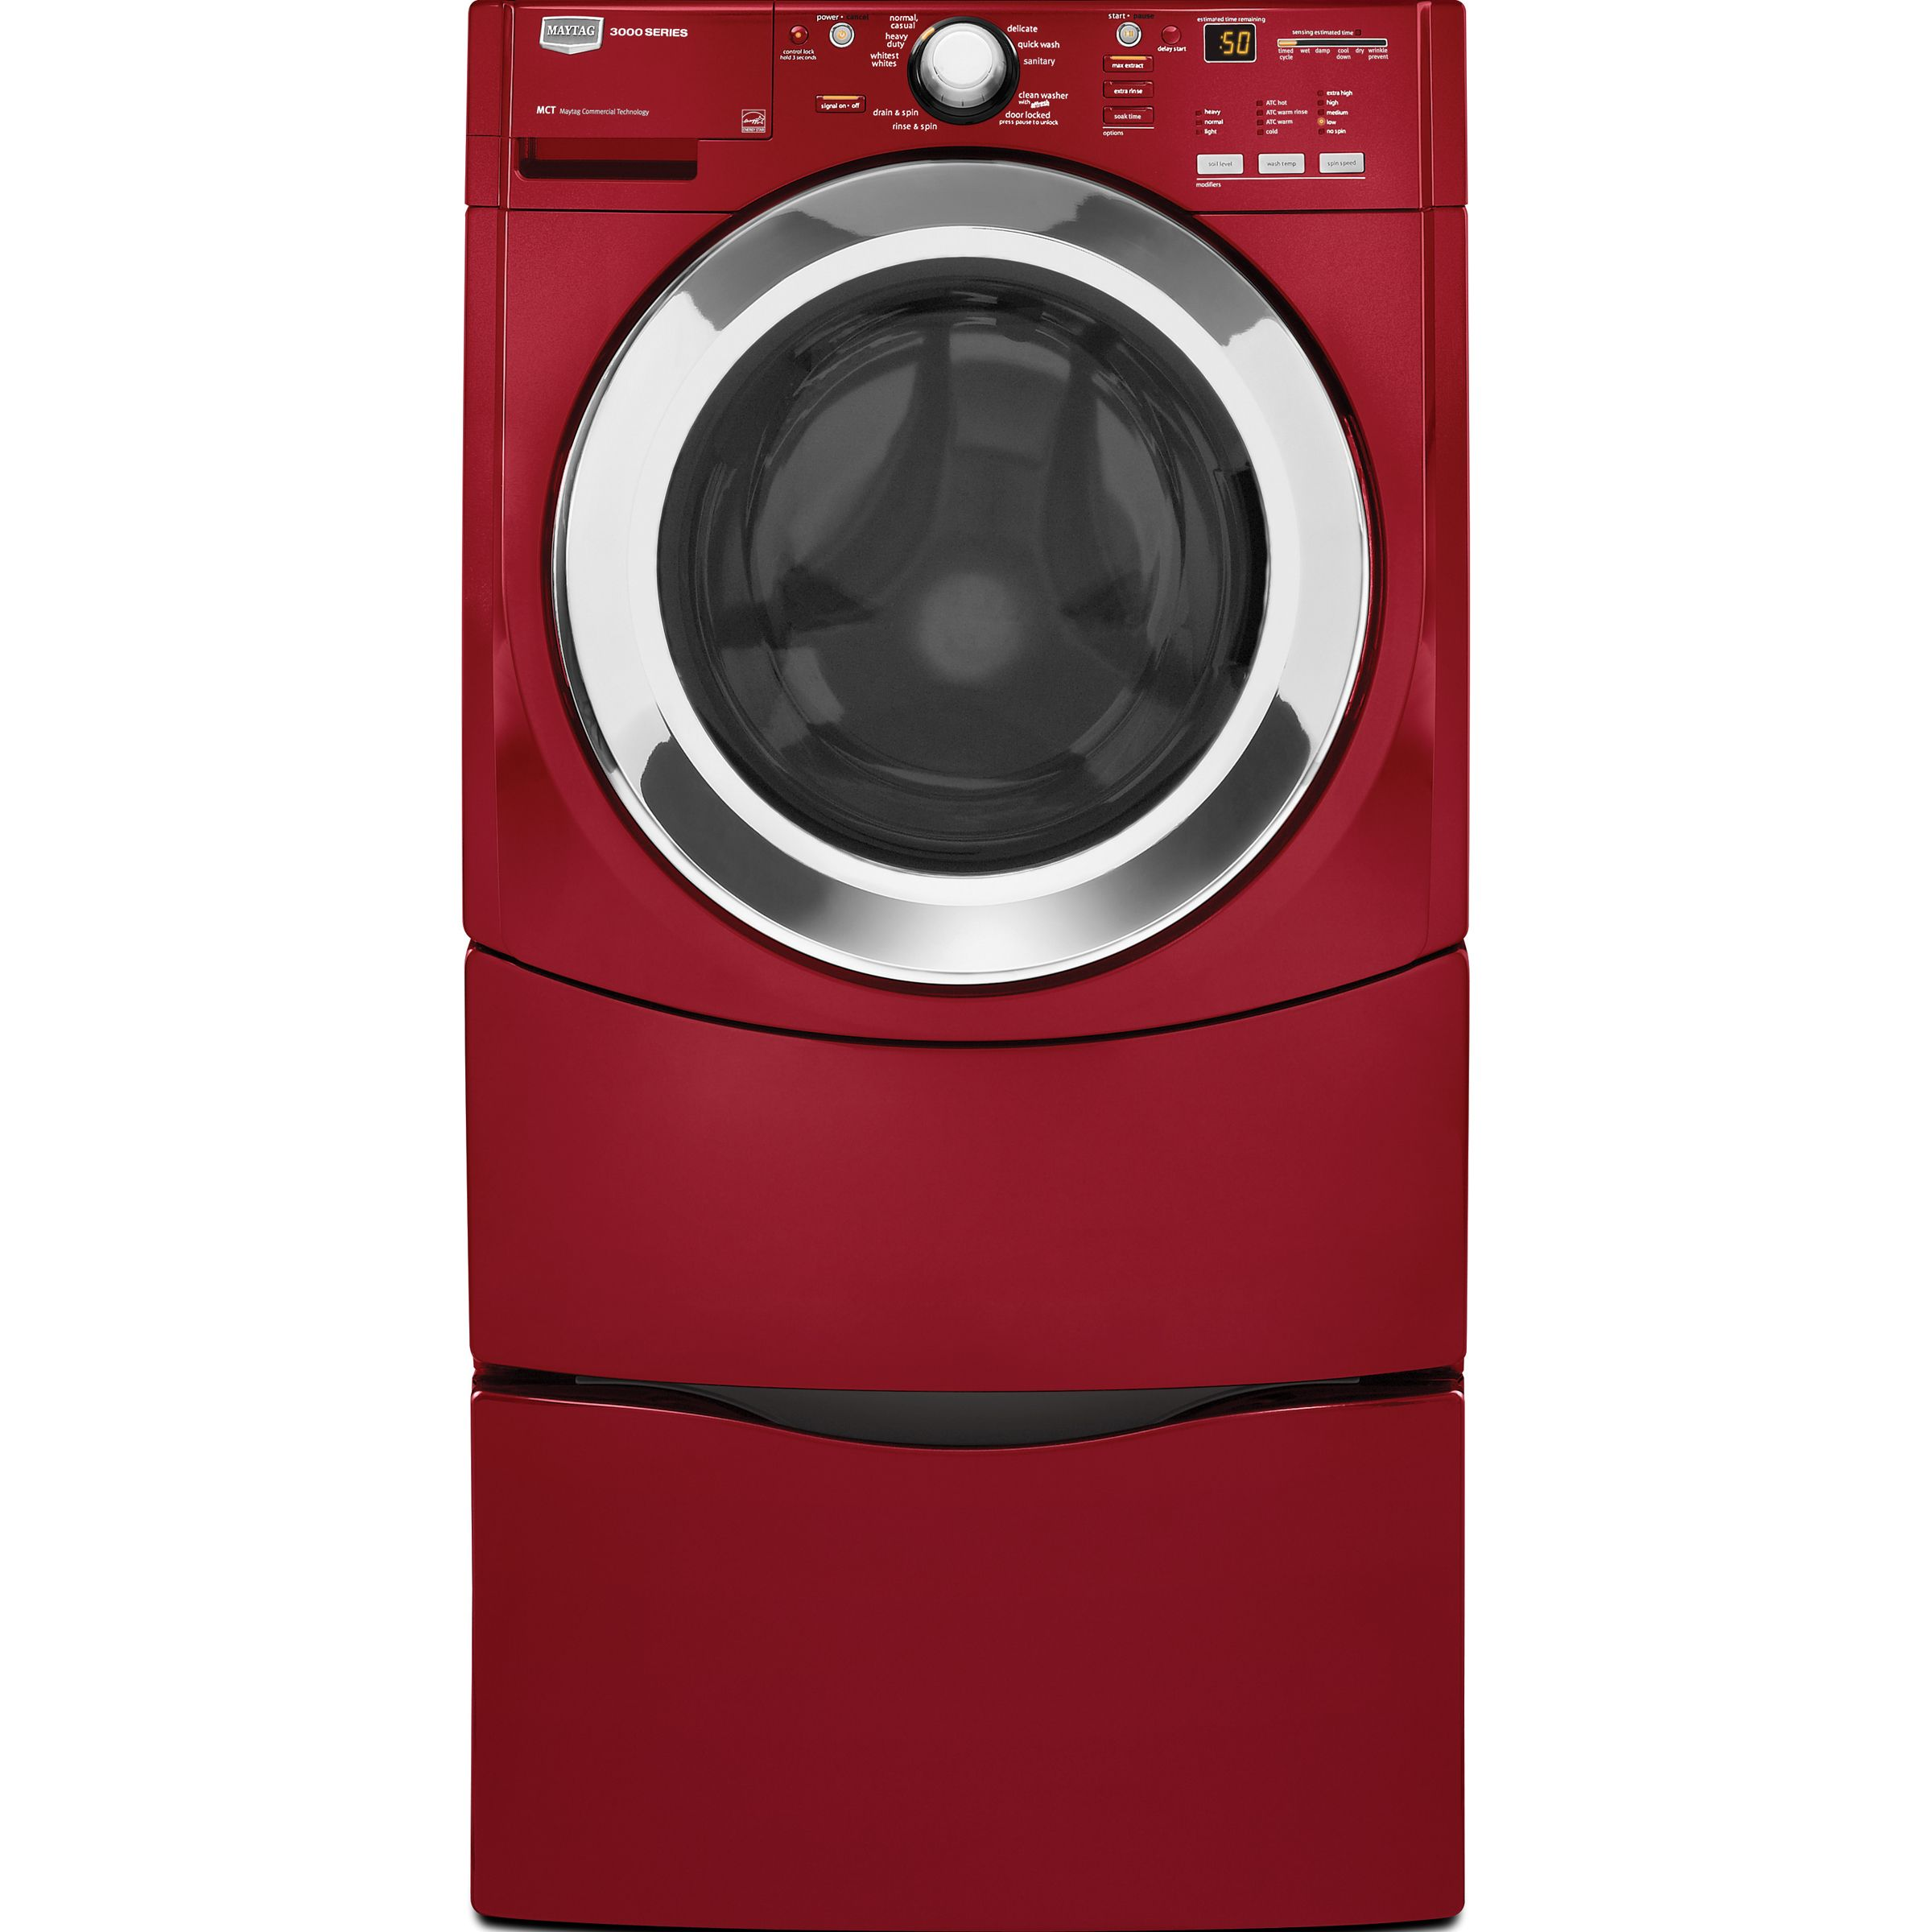 Maytag Performance Series 3.5 cu. ft. SuperSize Capacity Plus Front-Load Washer